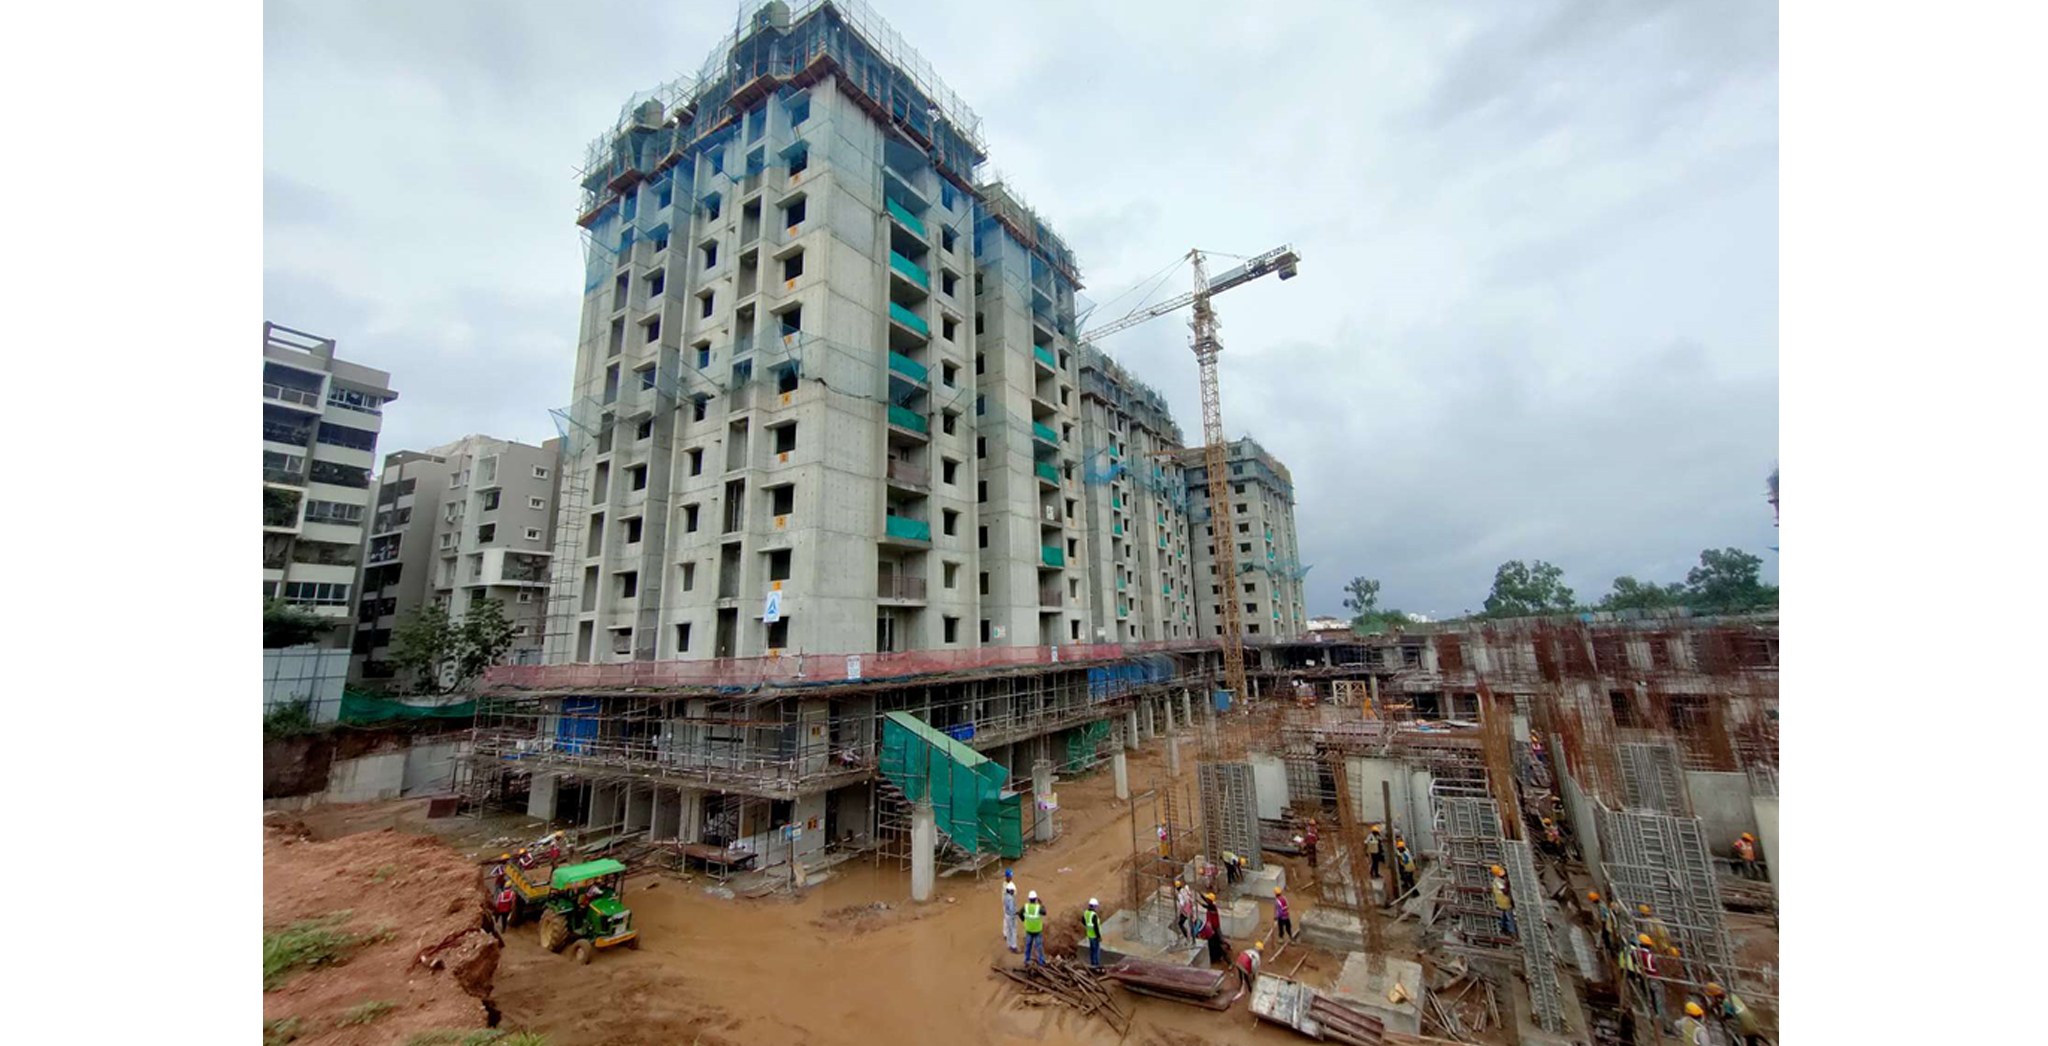 Aug 2021 - Block A1: 9th floor (70% completed), 10th Floor (25% completed)